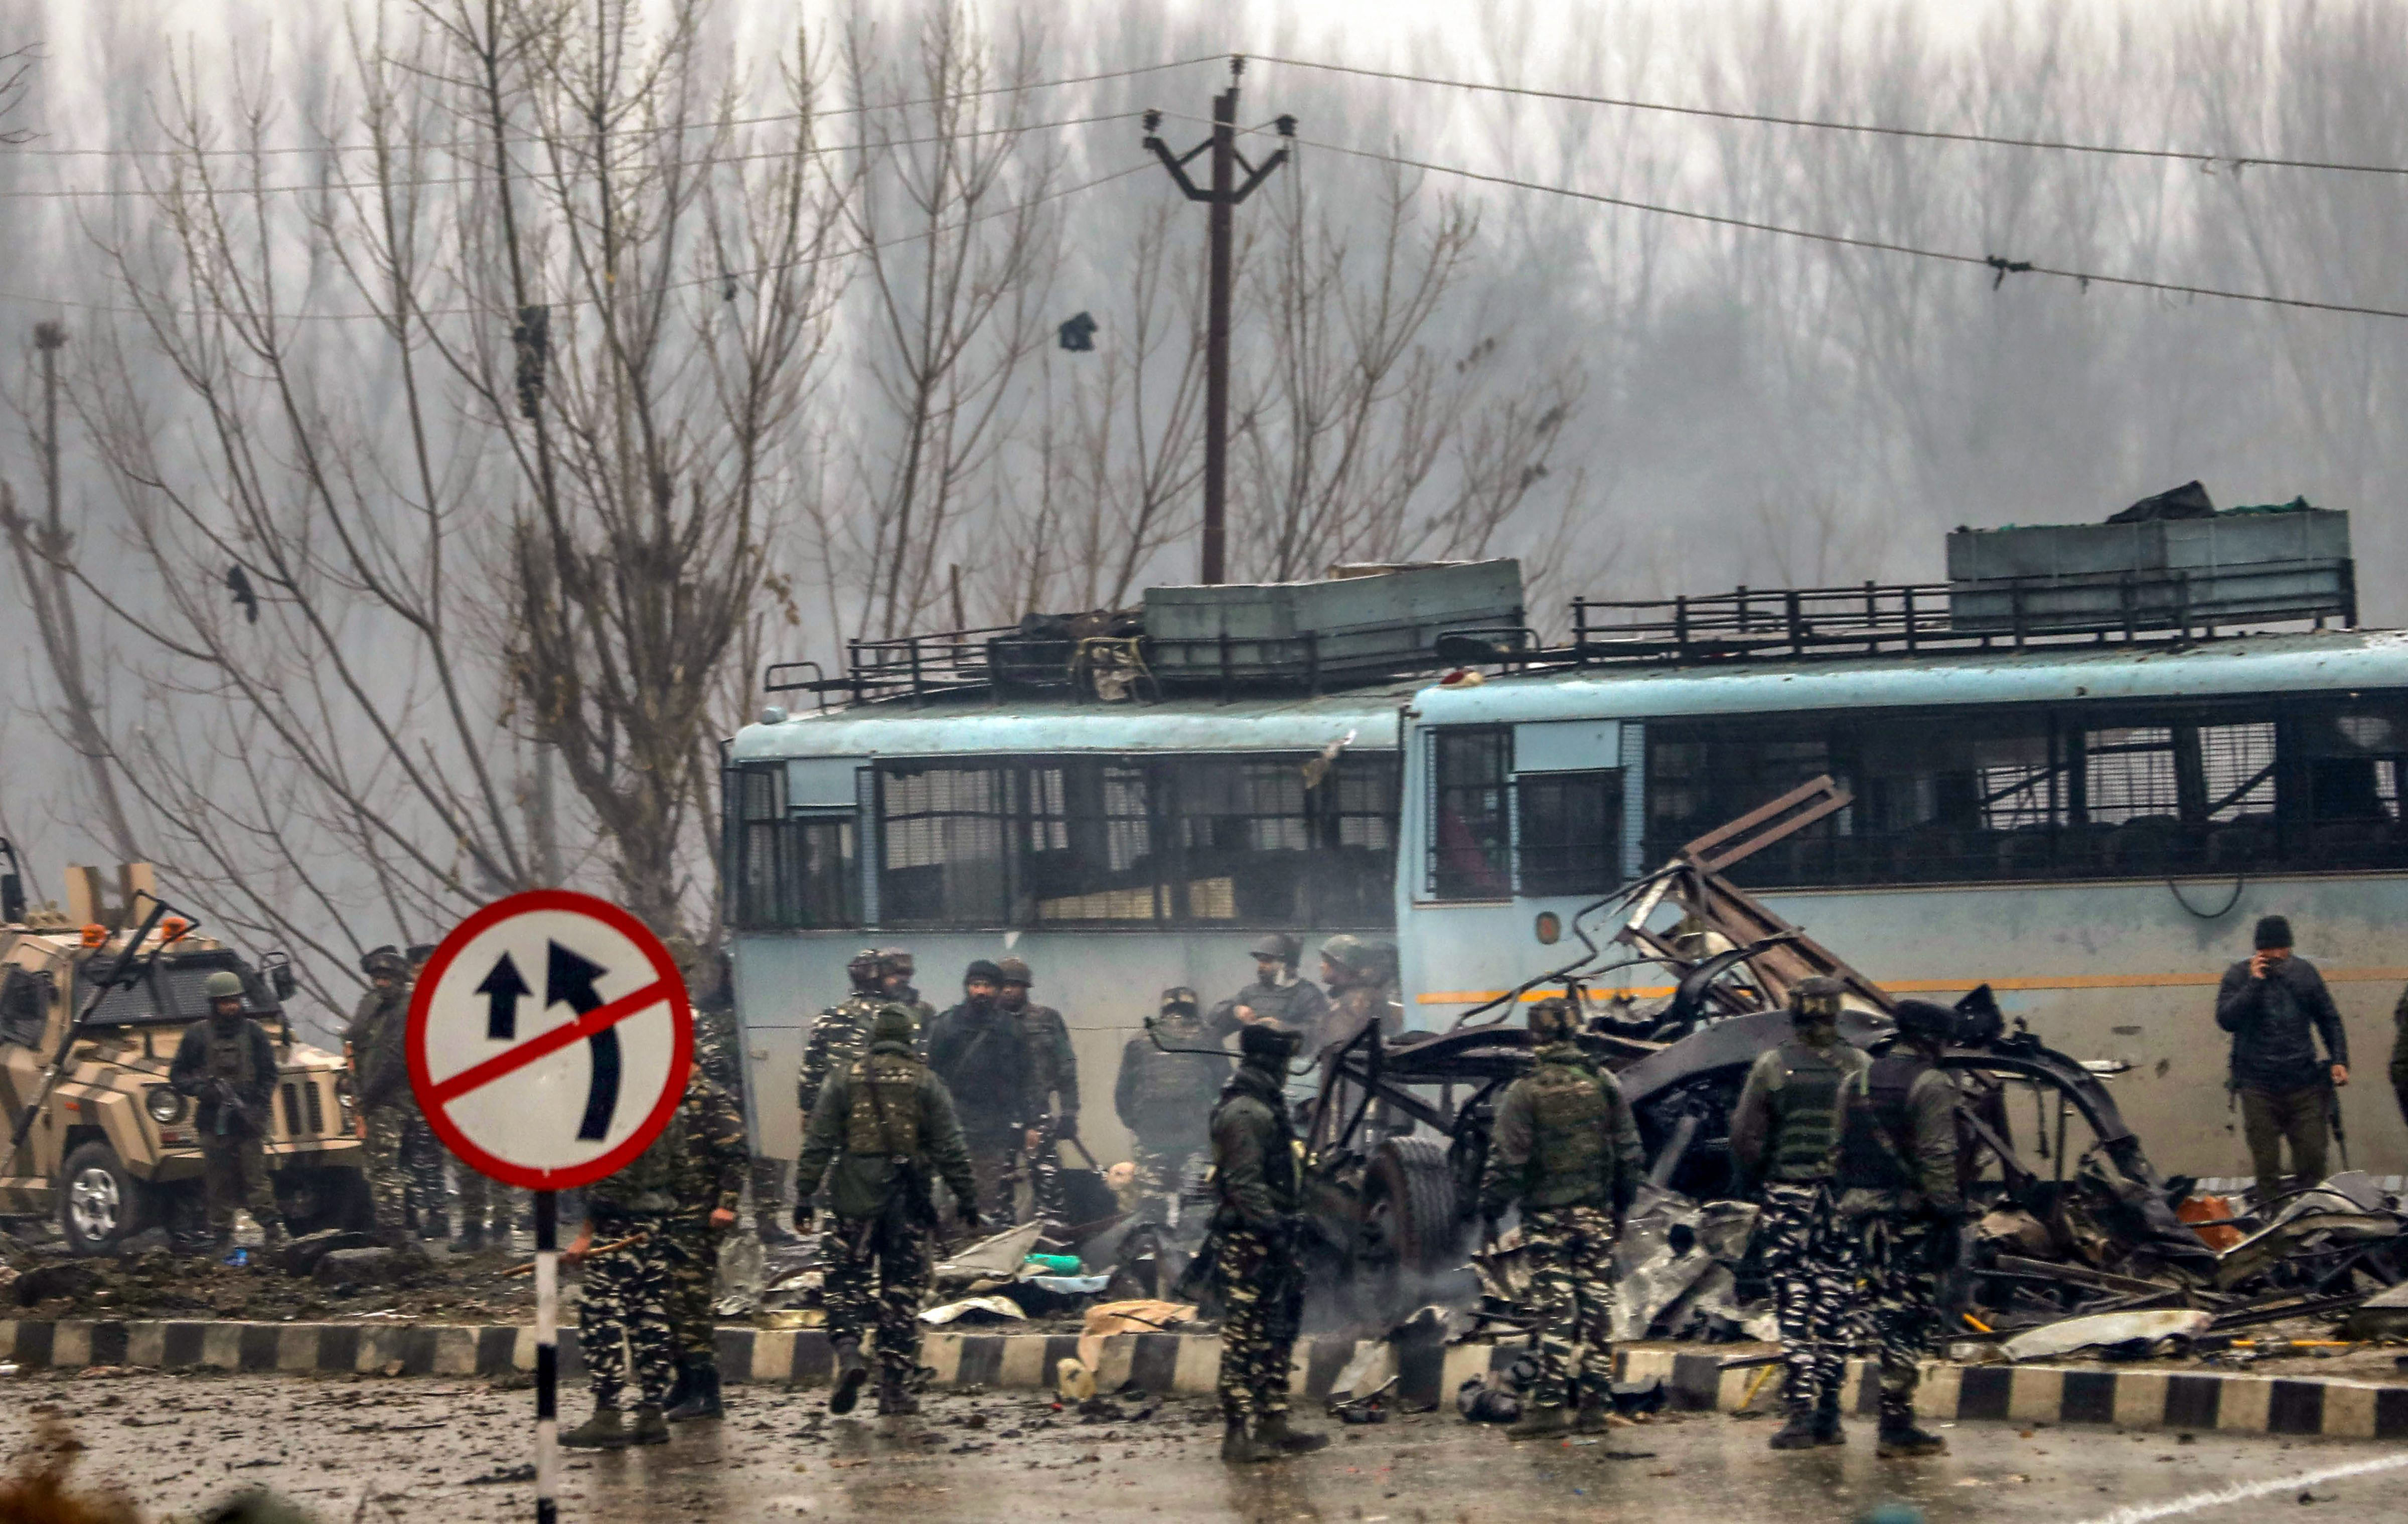 Pulwama Terror Attack: US, Russia and others condemn killing of CRPF jawans